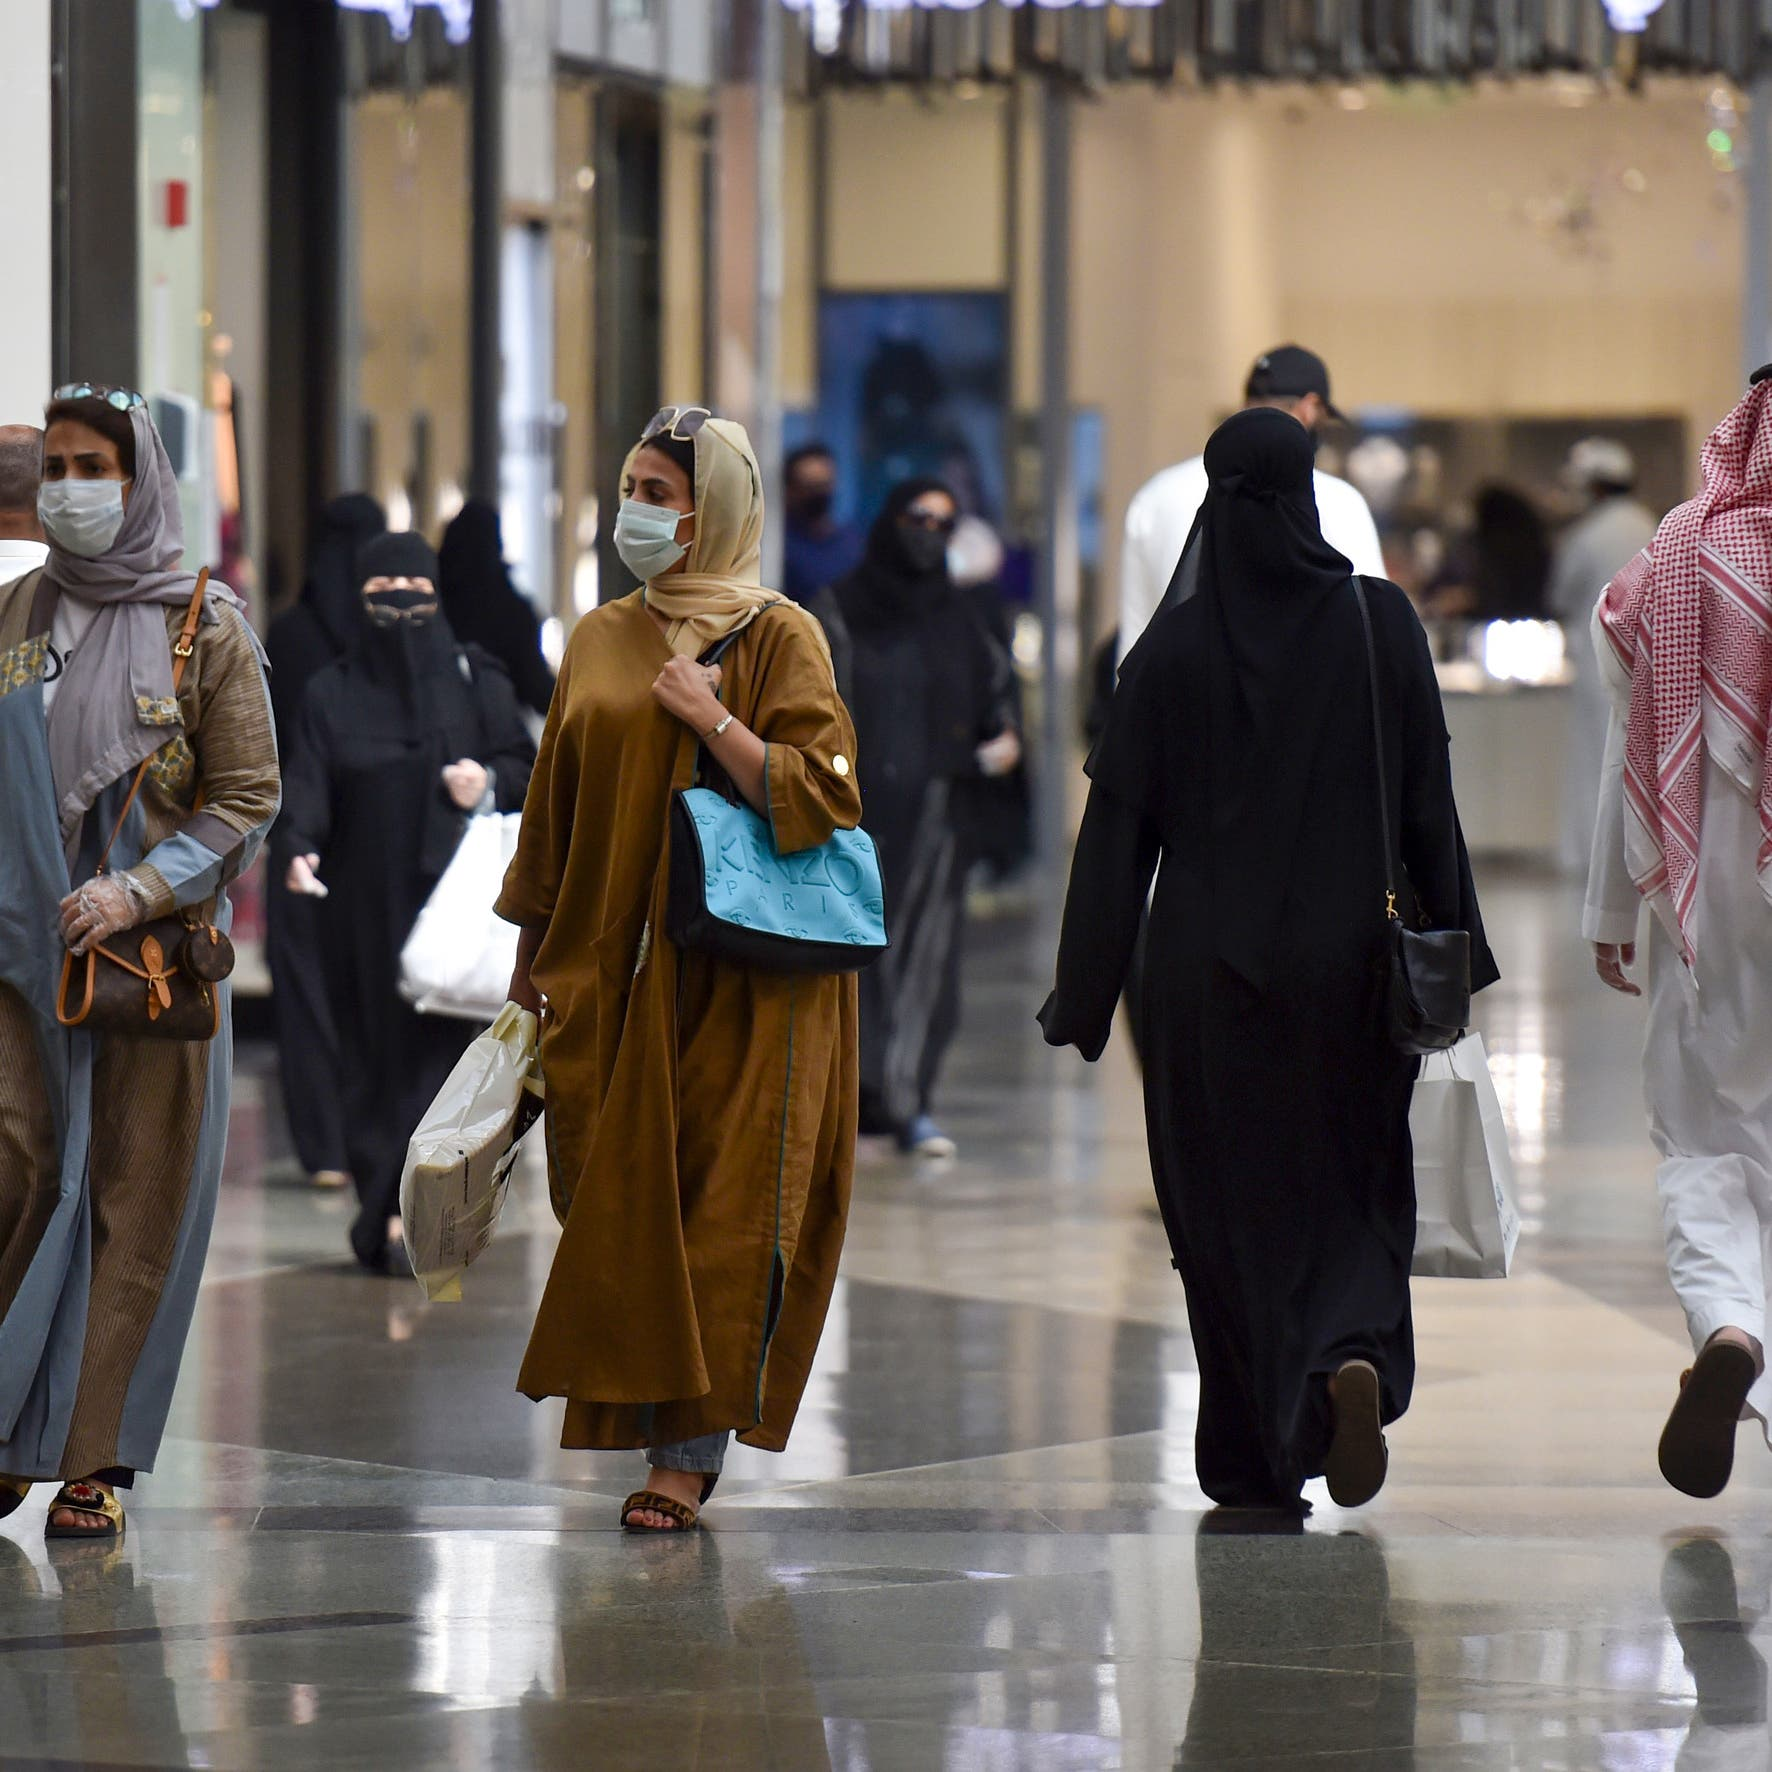 Saudi Arabia to ban unvaccinated people from entering public places from Aug 1